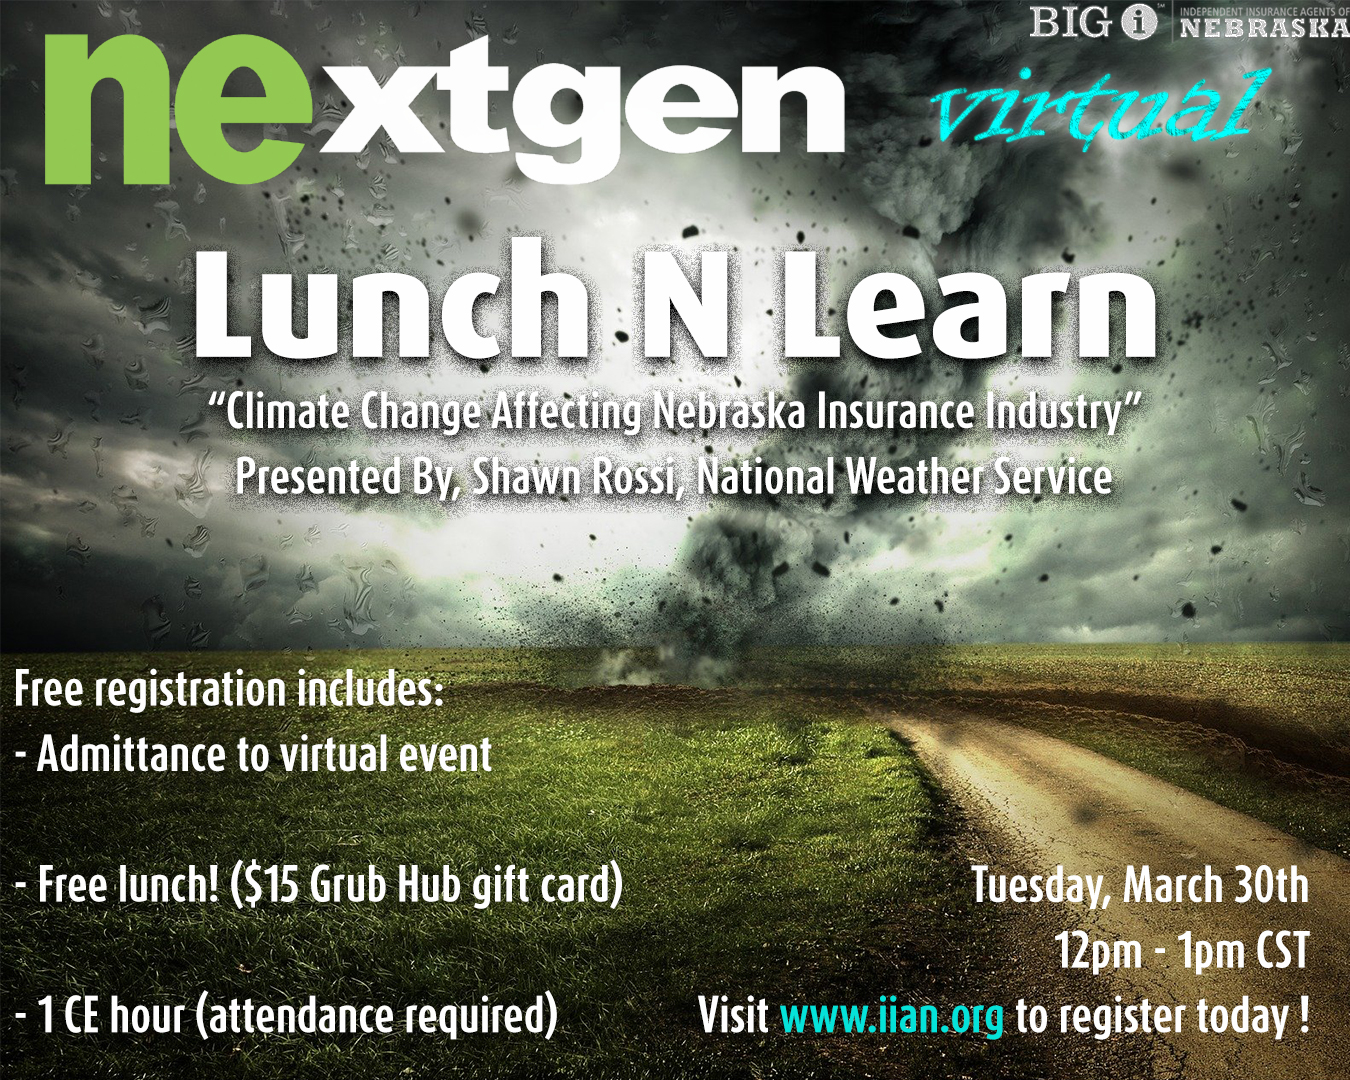 nextgen 3-30 lunch n learn.jpg